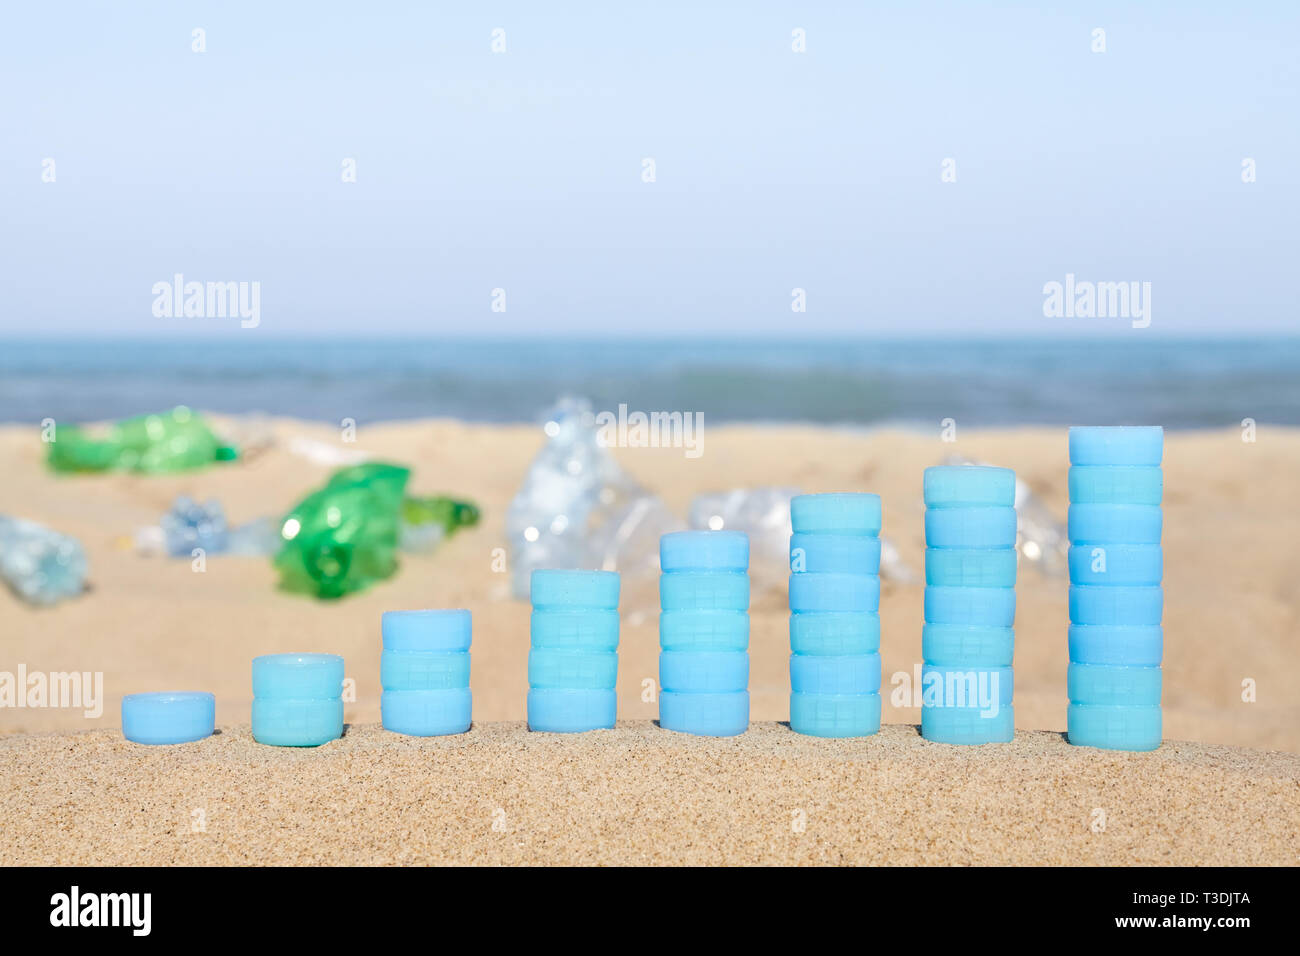 Chart made of plastic bottles caps on sand showing the increase in single use plastic products found on European beaches. - Stock Image